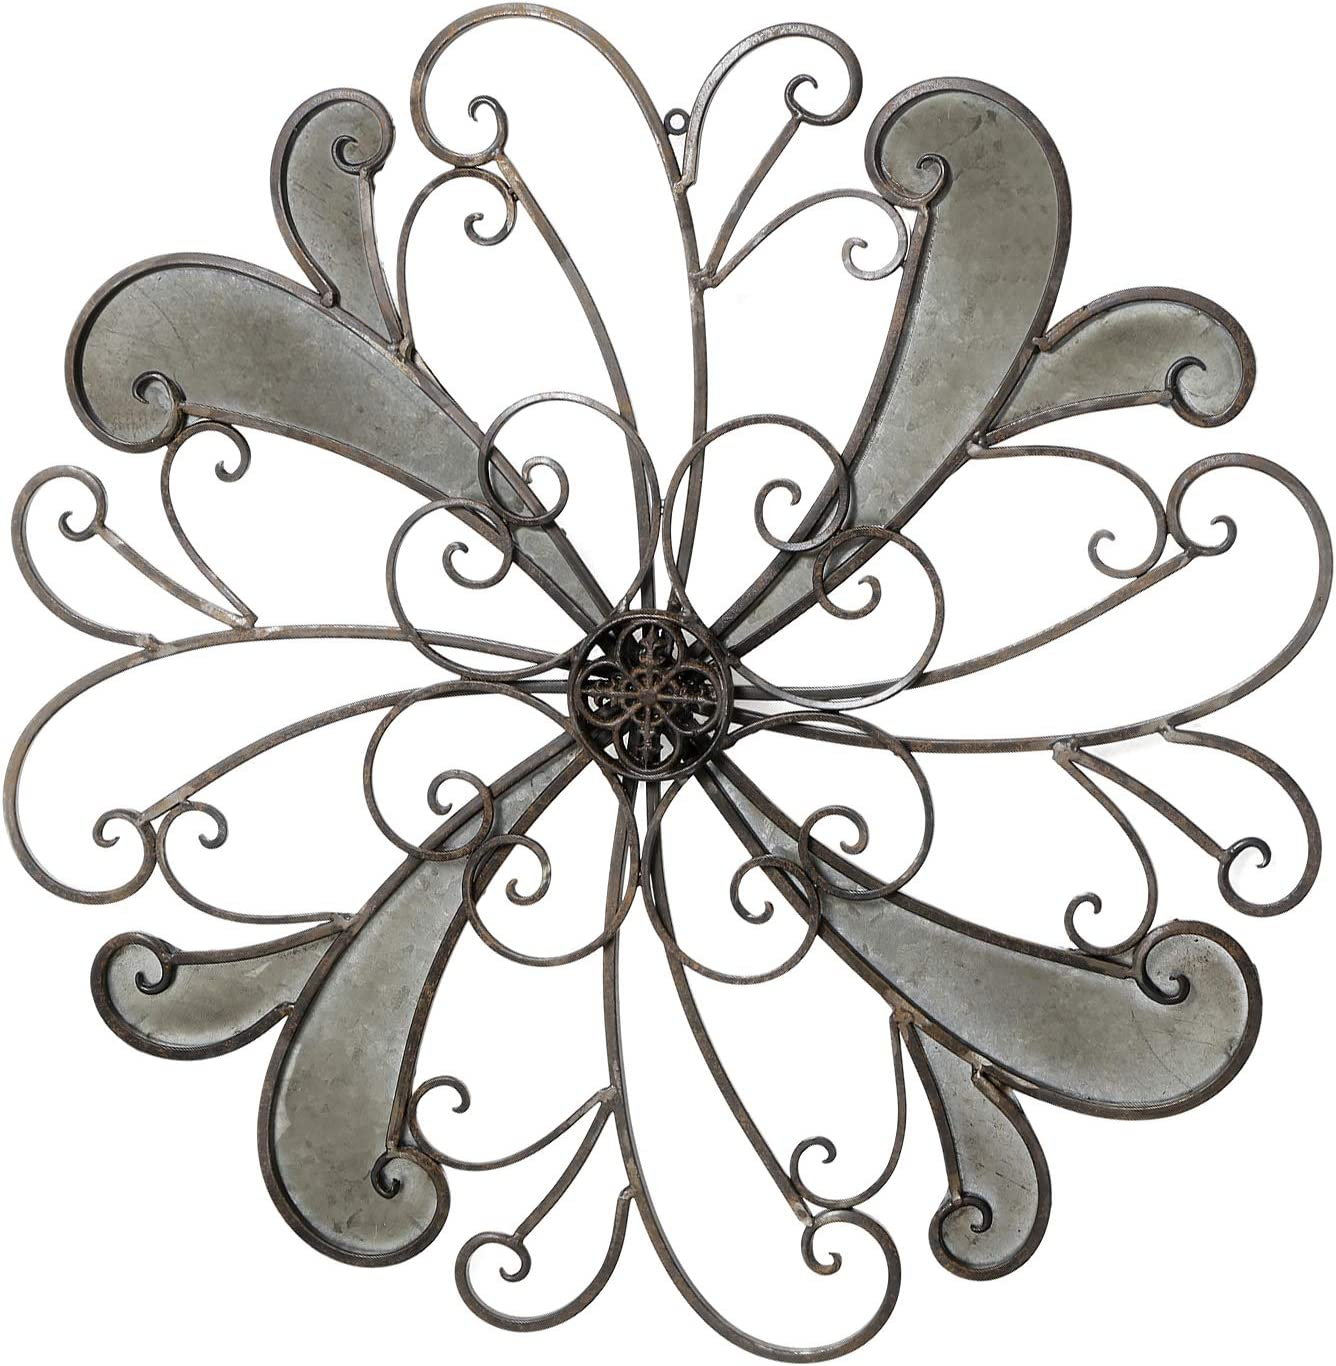 Adeco Rustic Urban Flower Scrolled Design, Metal Wall Hanging Decor For Nature Home Art Decoration & Kitchen Holiday Wall Decorations, Christmas Wall Art Gifts - 25x25 Inches